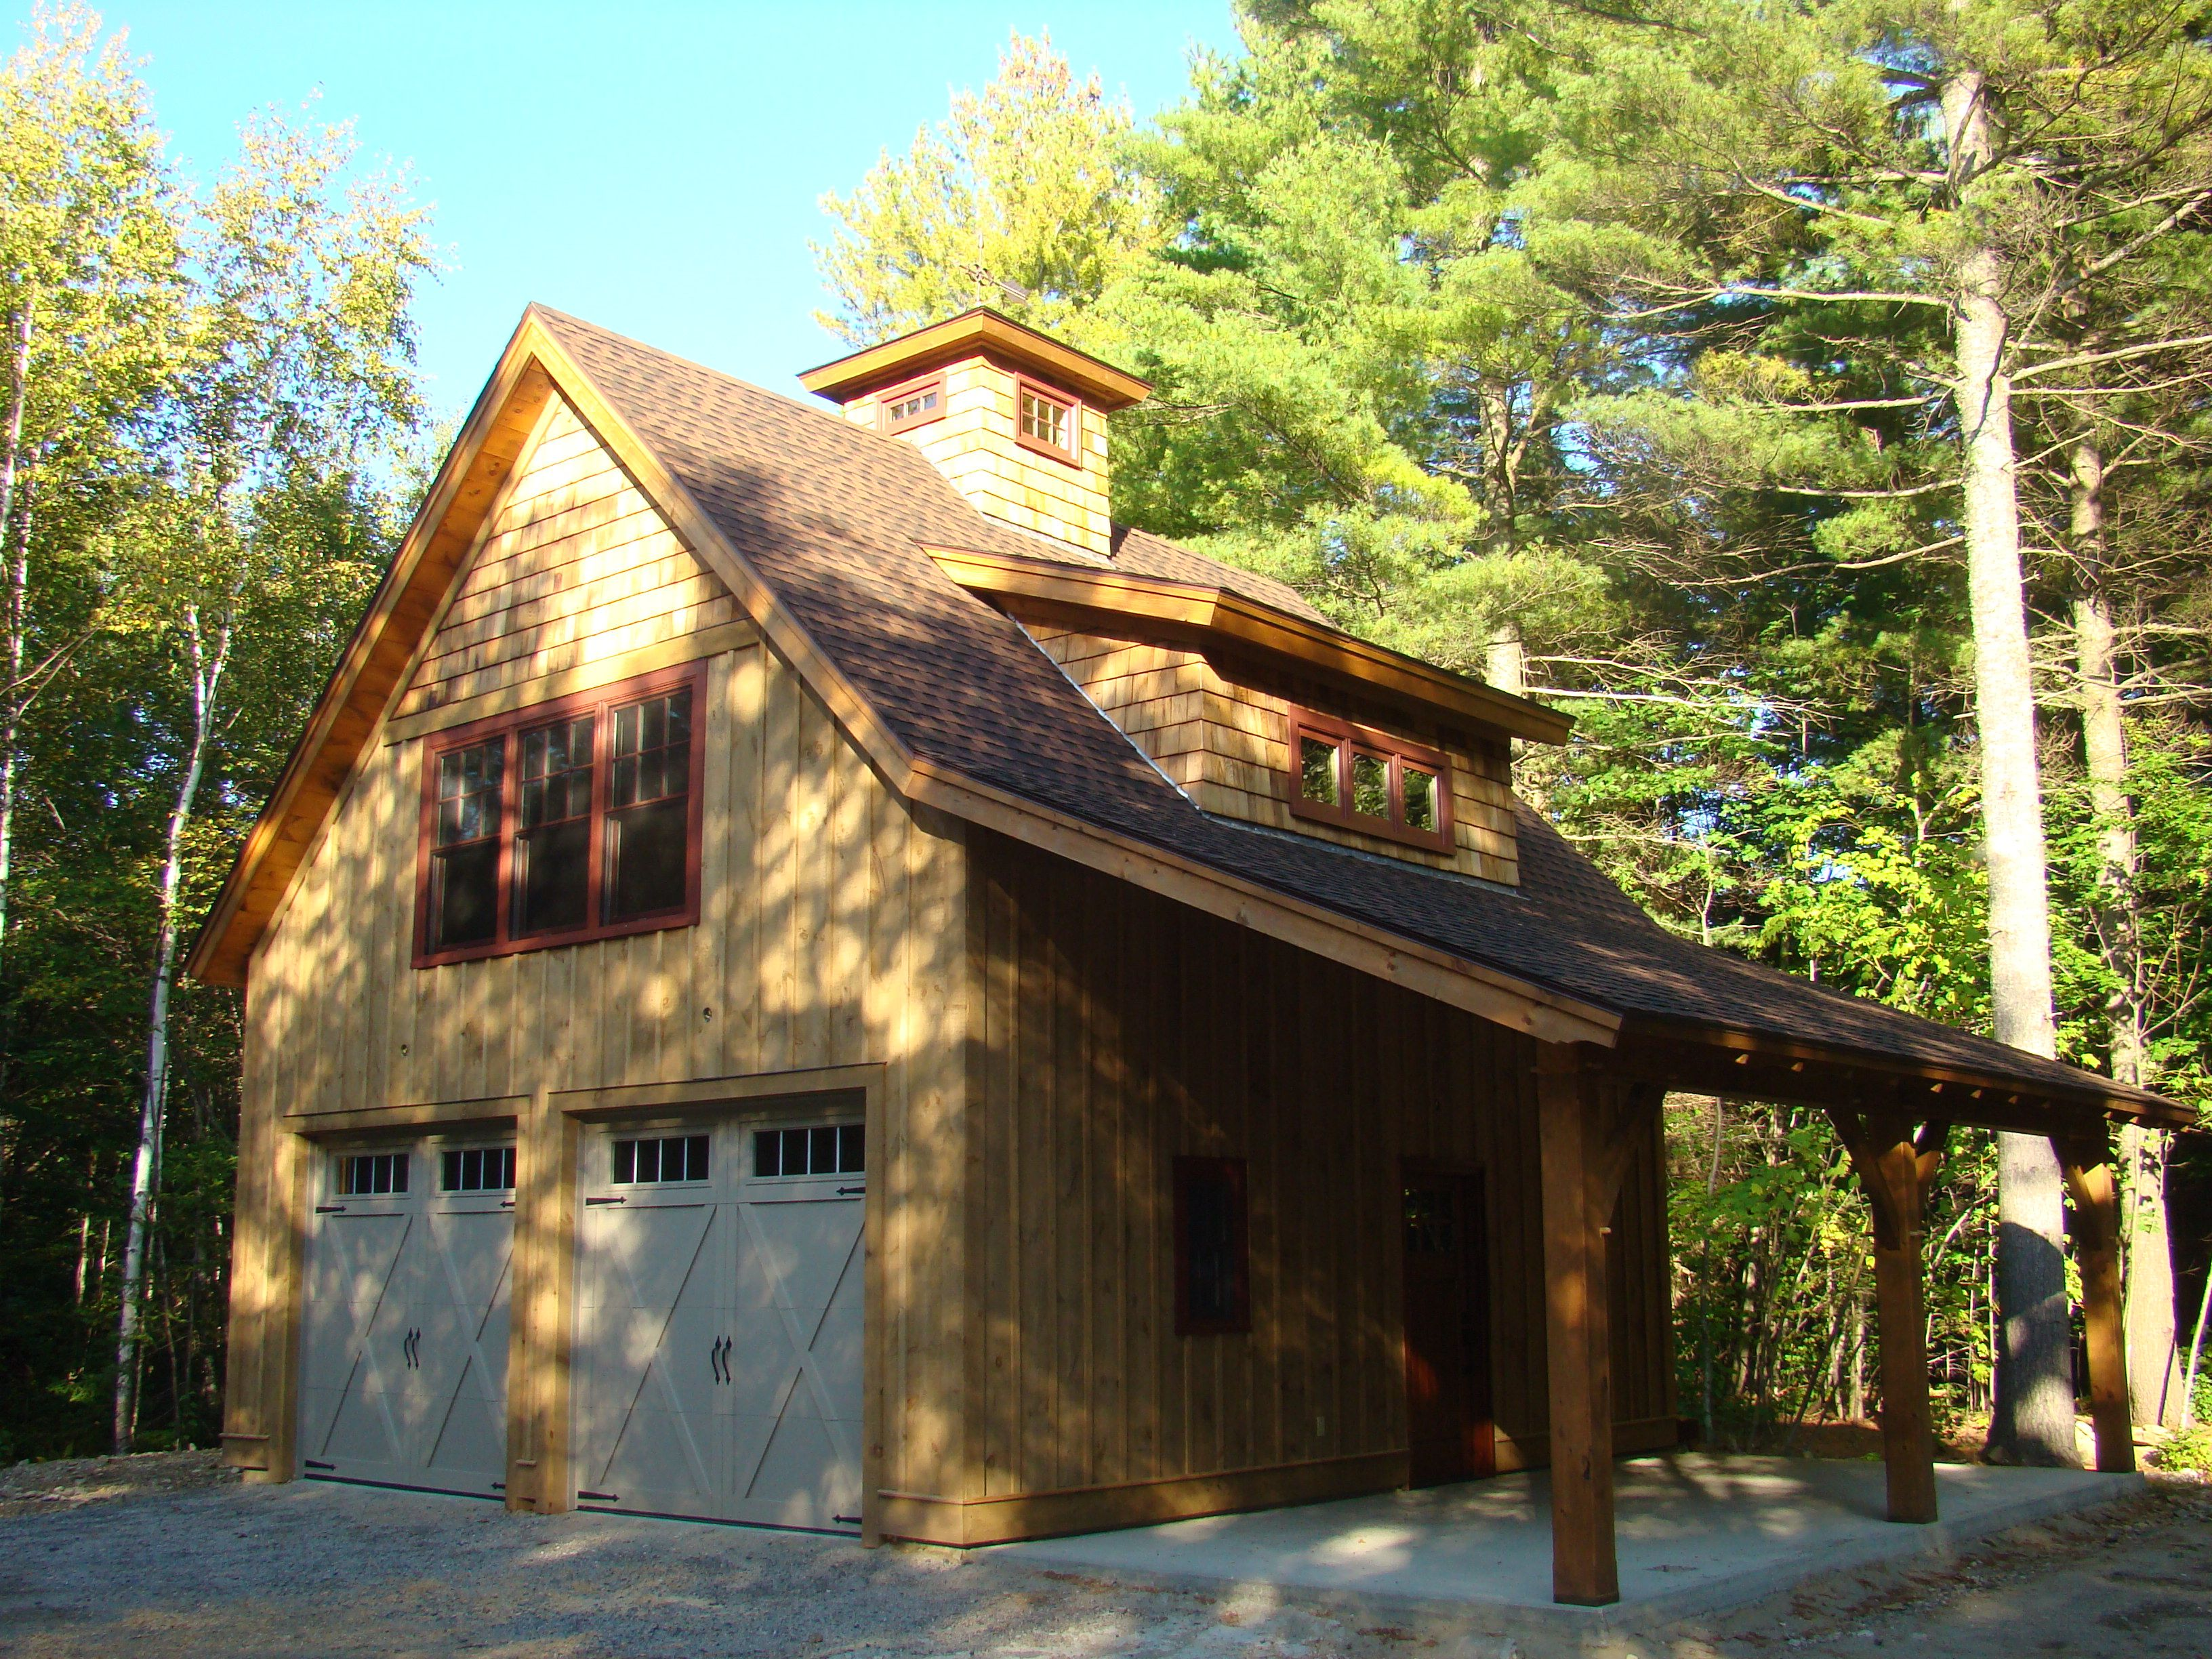 kits simple cabins designs with plans nice walkout basement diy timber ideas picture house frame classy home cabin adornment design famous a